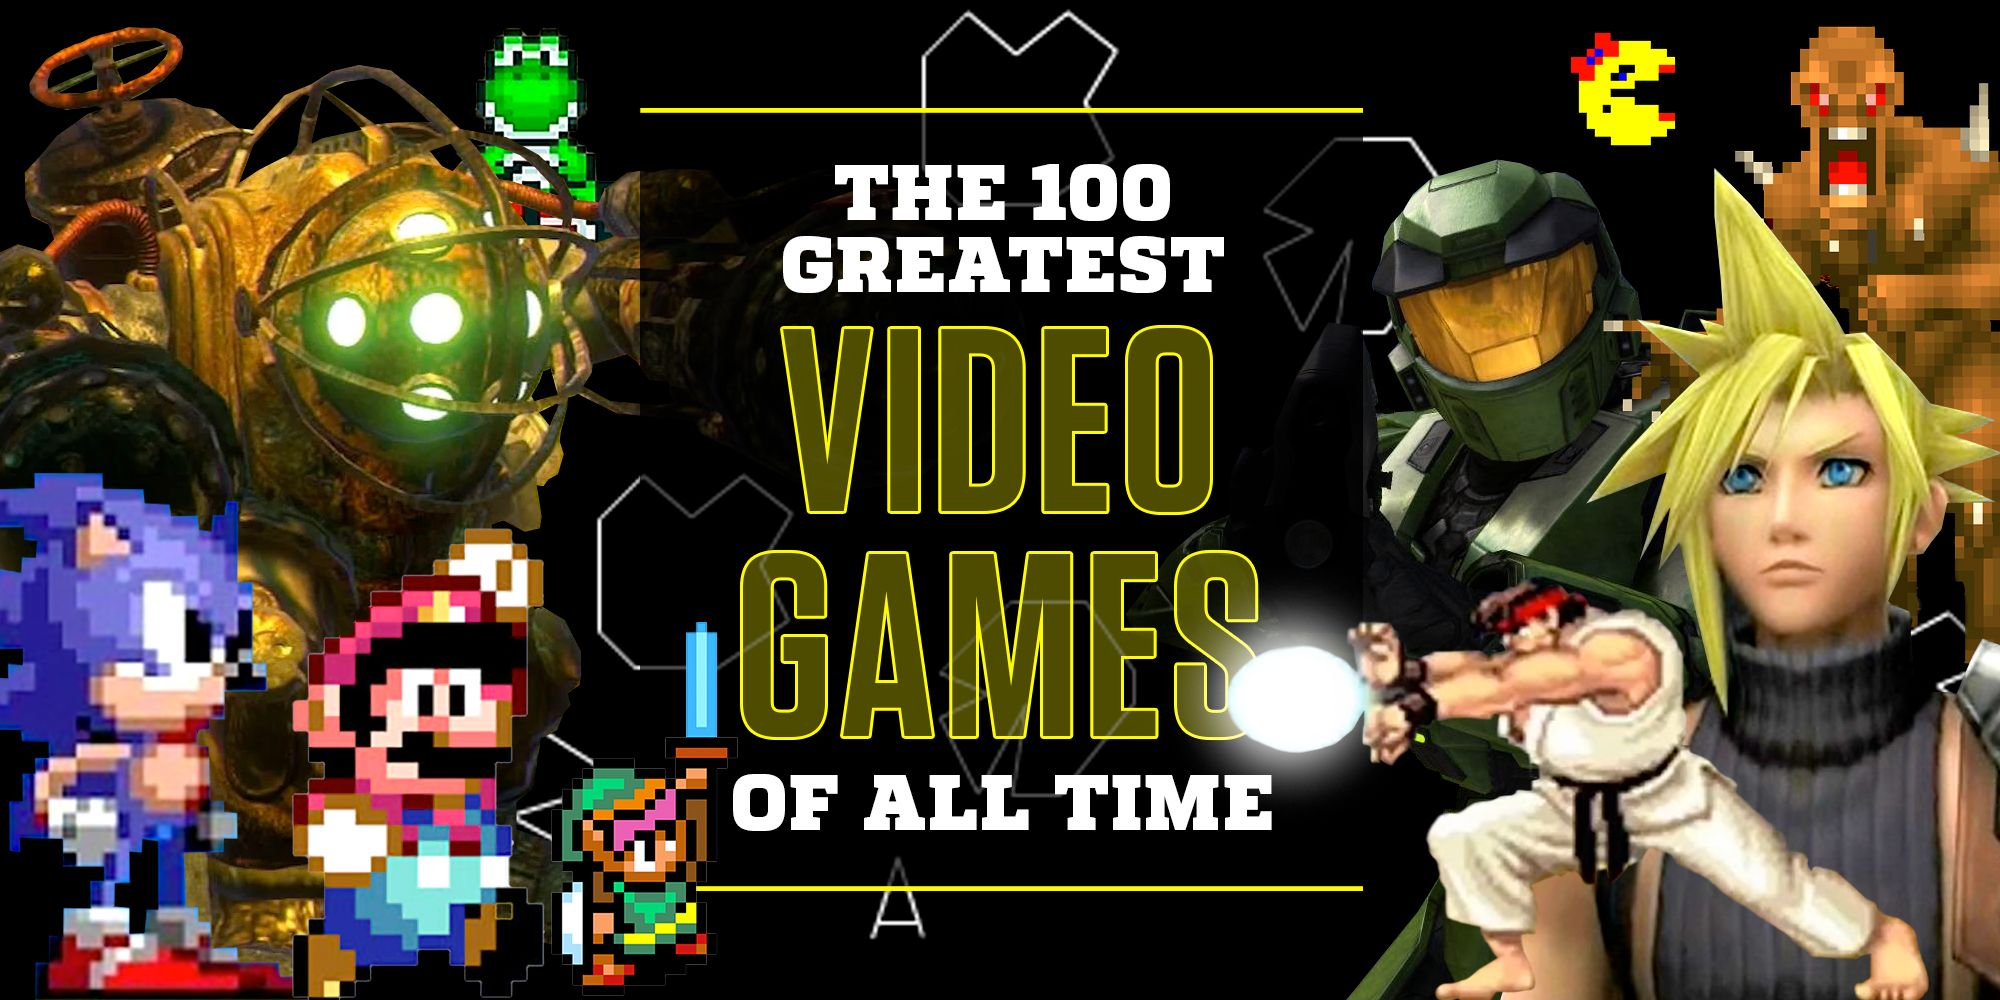 The 100 Greatest Video Games of All Time